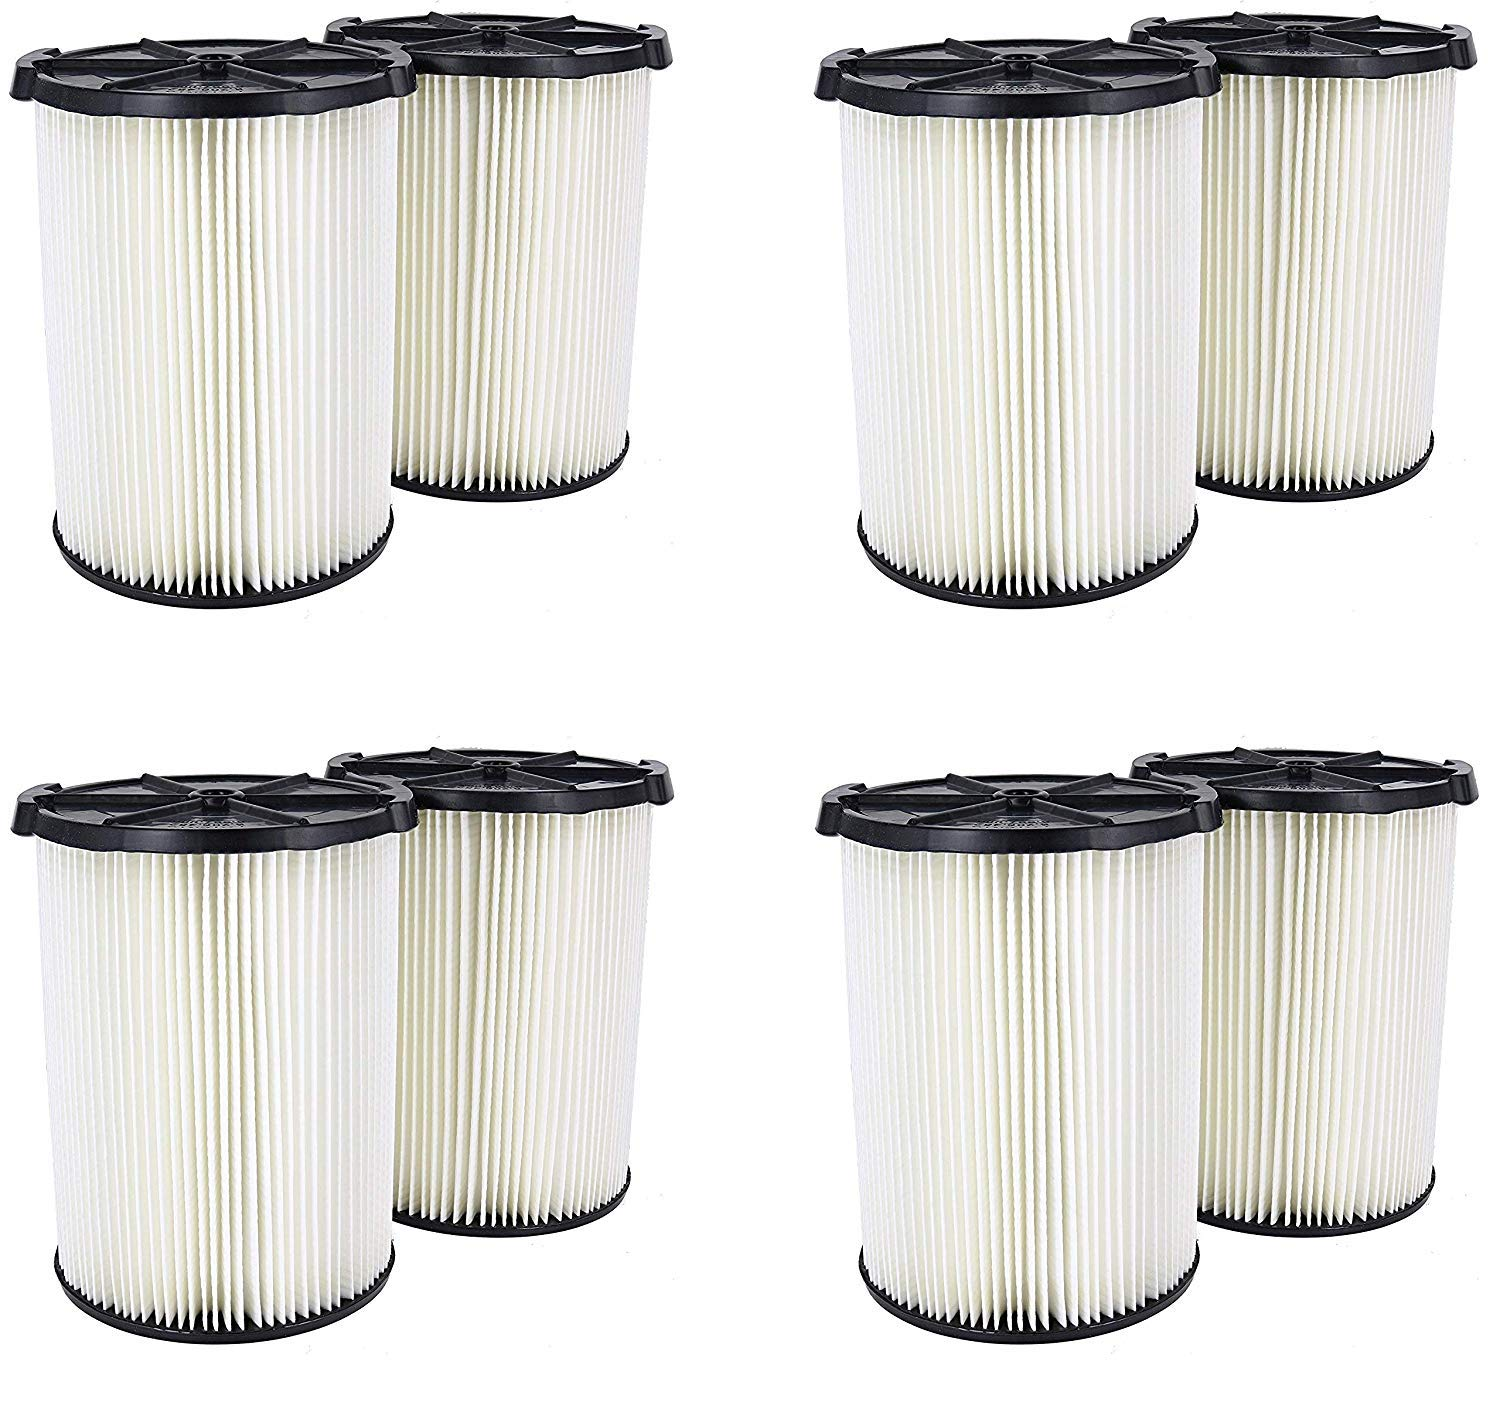 Ridgid VF4200 Genuine Replacement 1-Layer Everyday Dirt Wet/Dry Vac Filter for Ridgid 5-20 Gallon Vacuums (4 X Pack of 2)